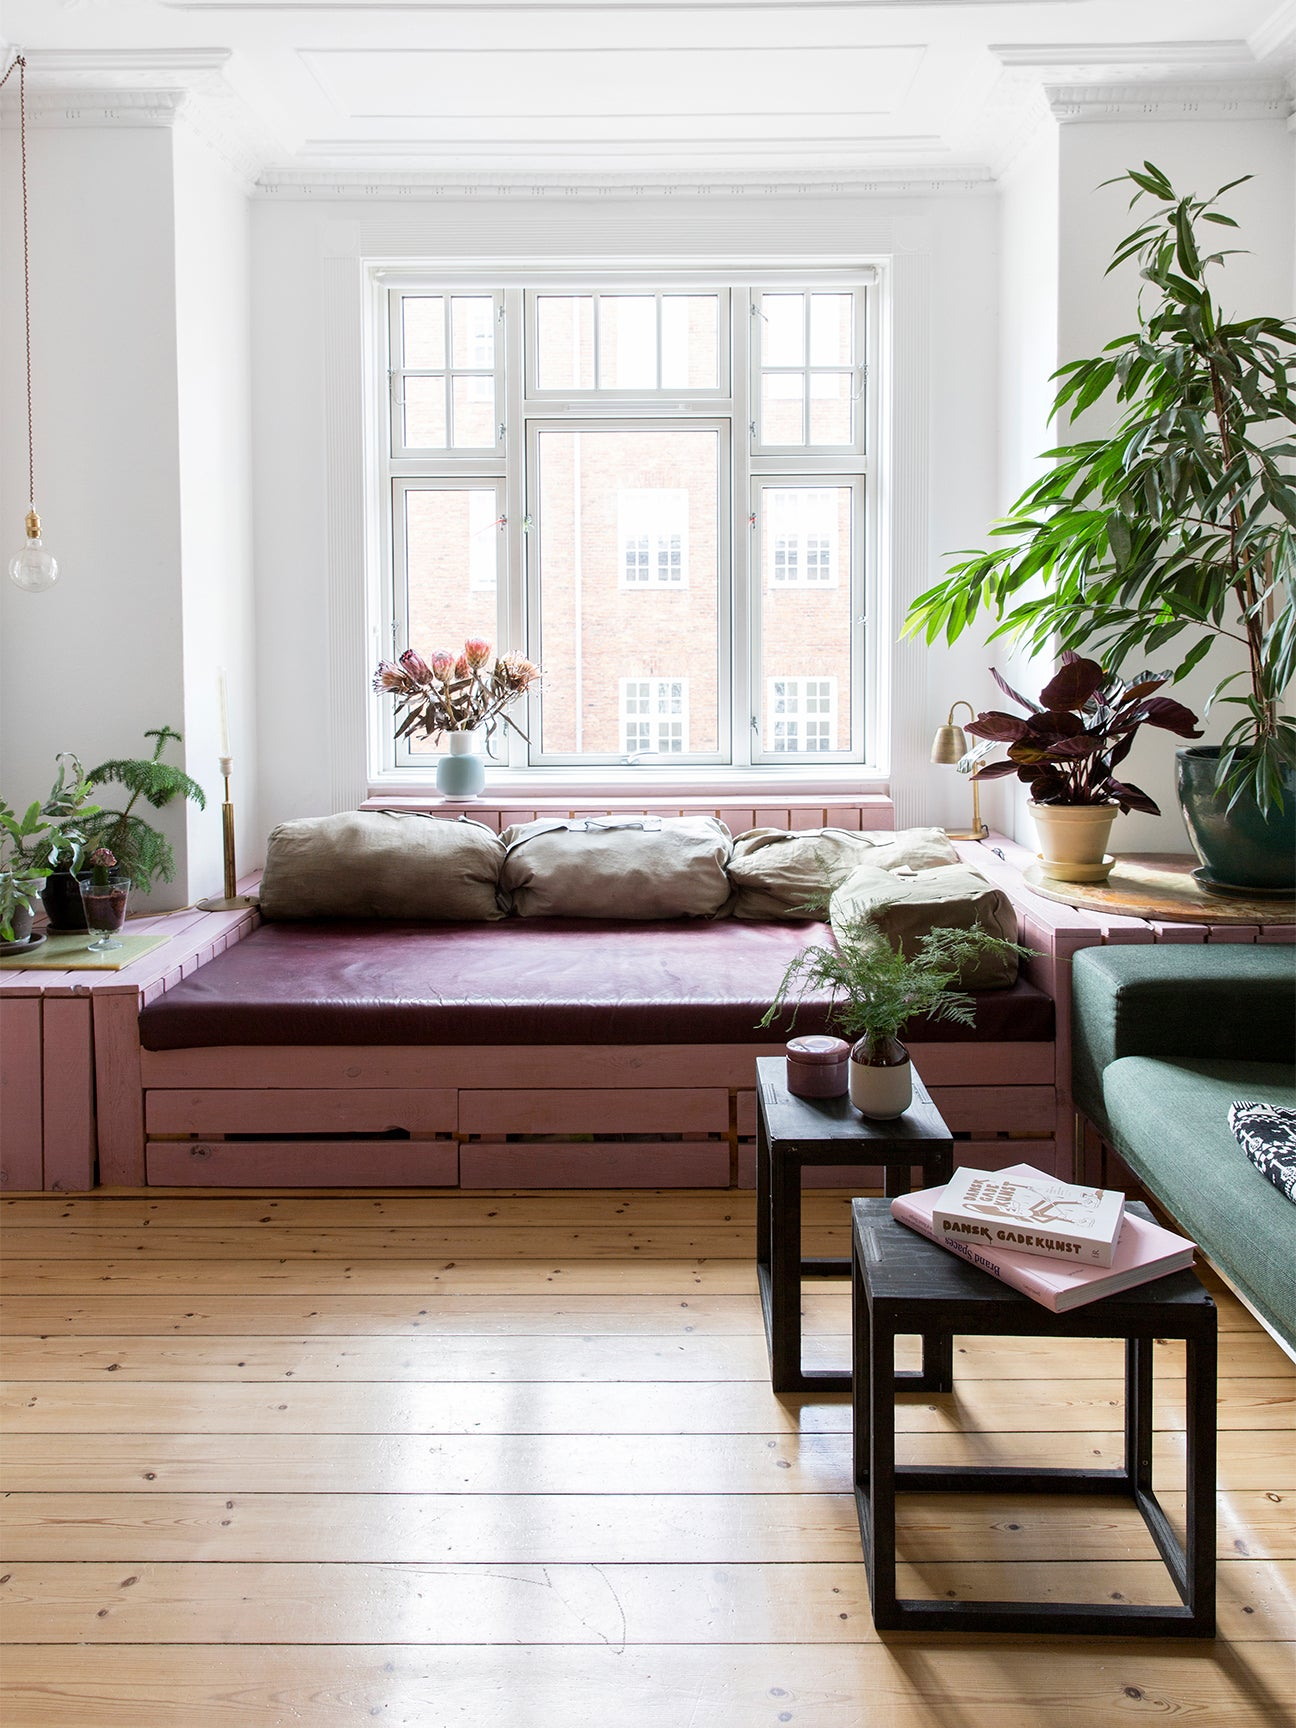 pink pallet boards holding up a sofa